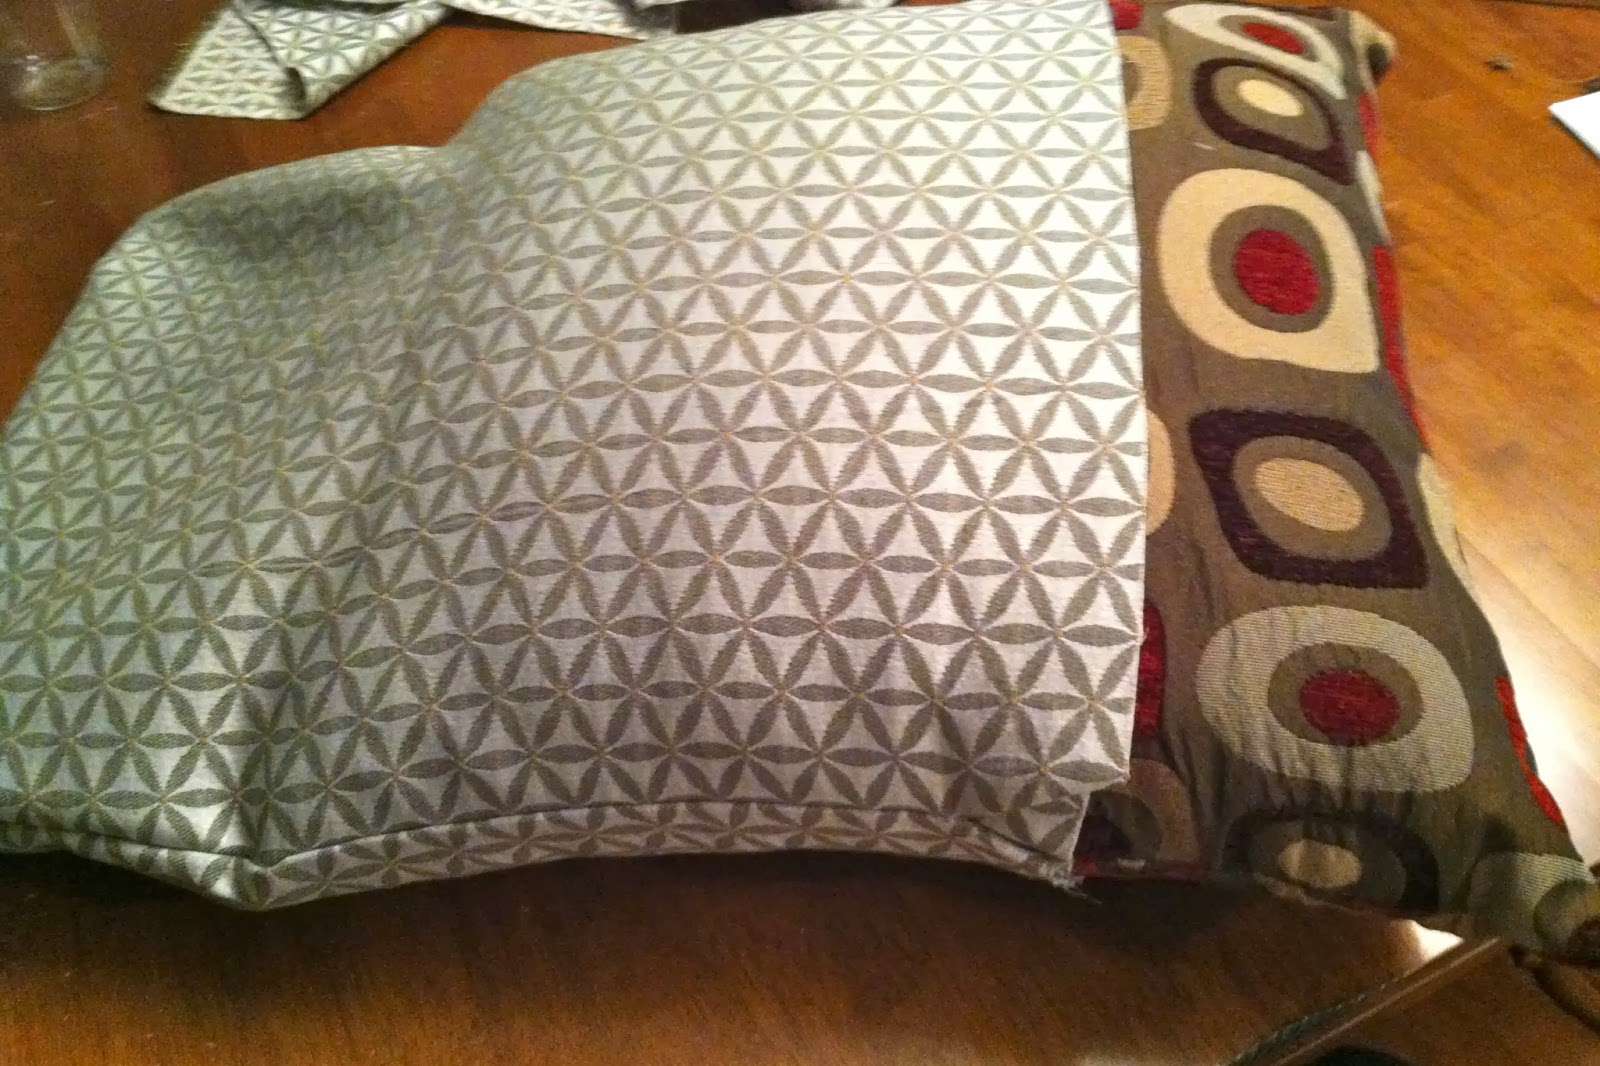 Diy Throw Pillow Cover No Sew : DIY Why Spend More: No sew pillow covers using hot glue